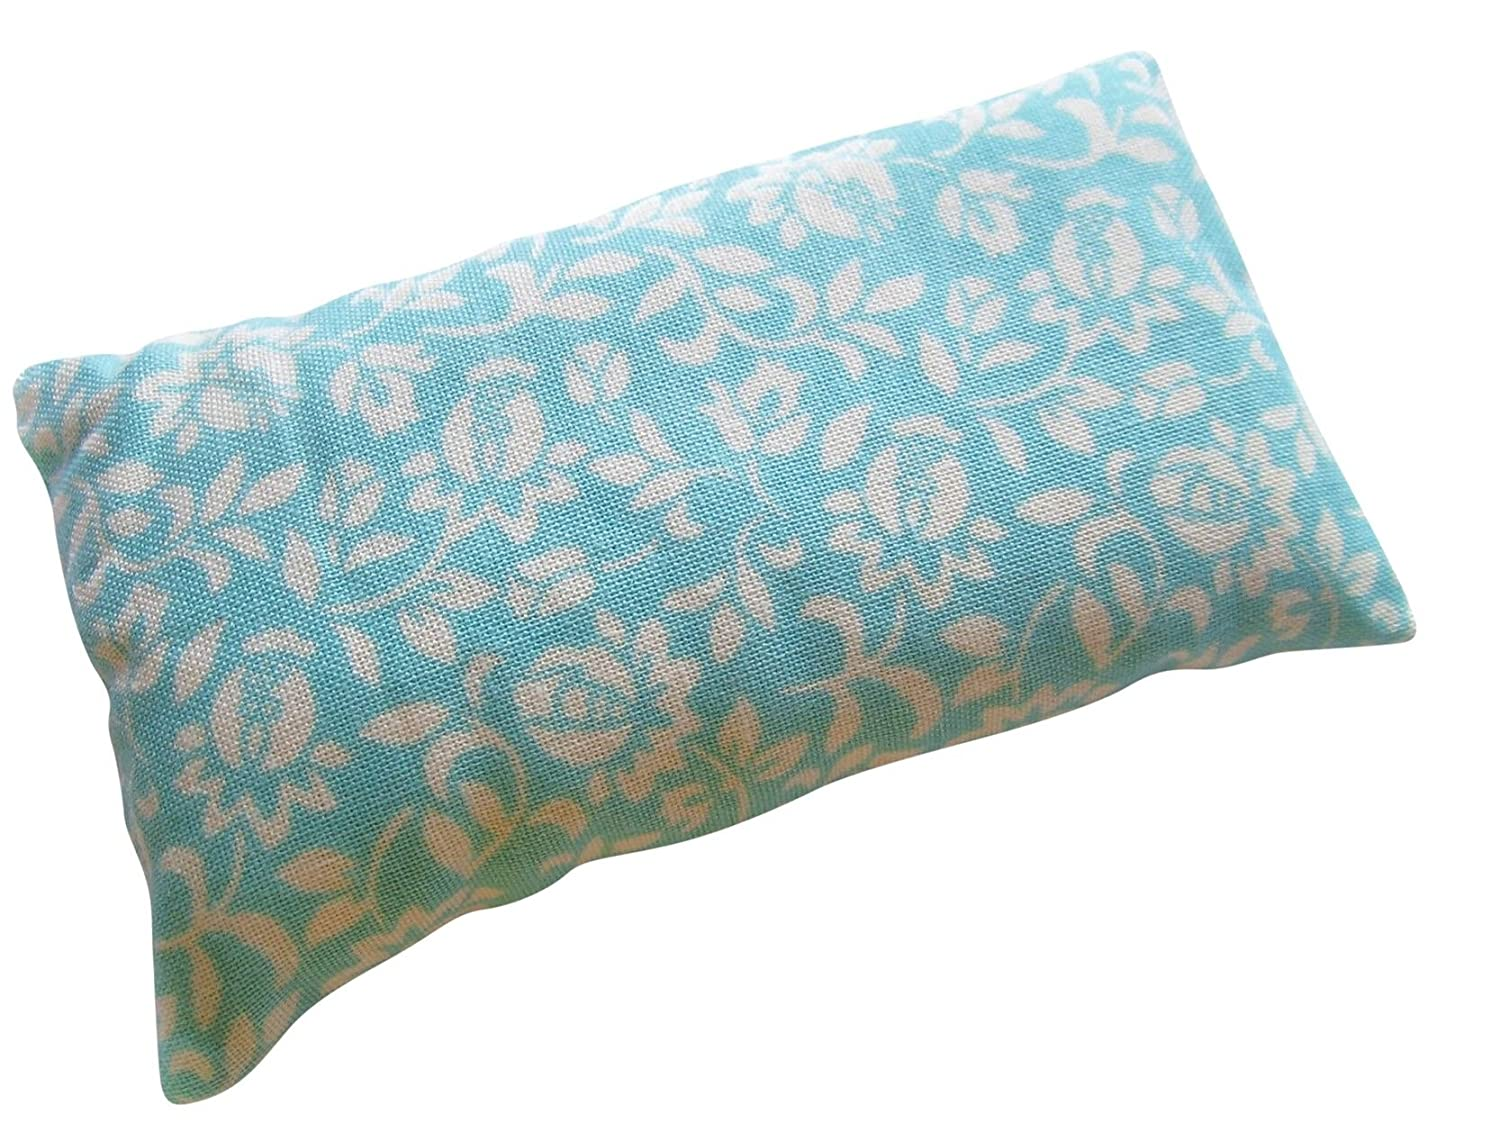 Nakpunar Robin Egg Blue Floral Pincushion Filled with Emery